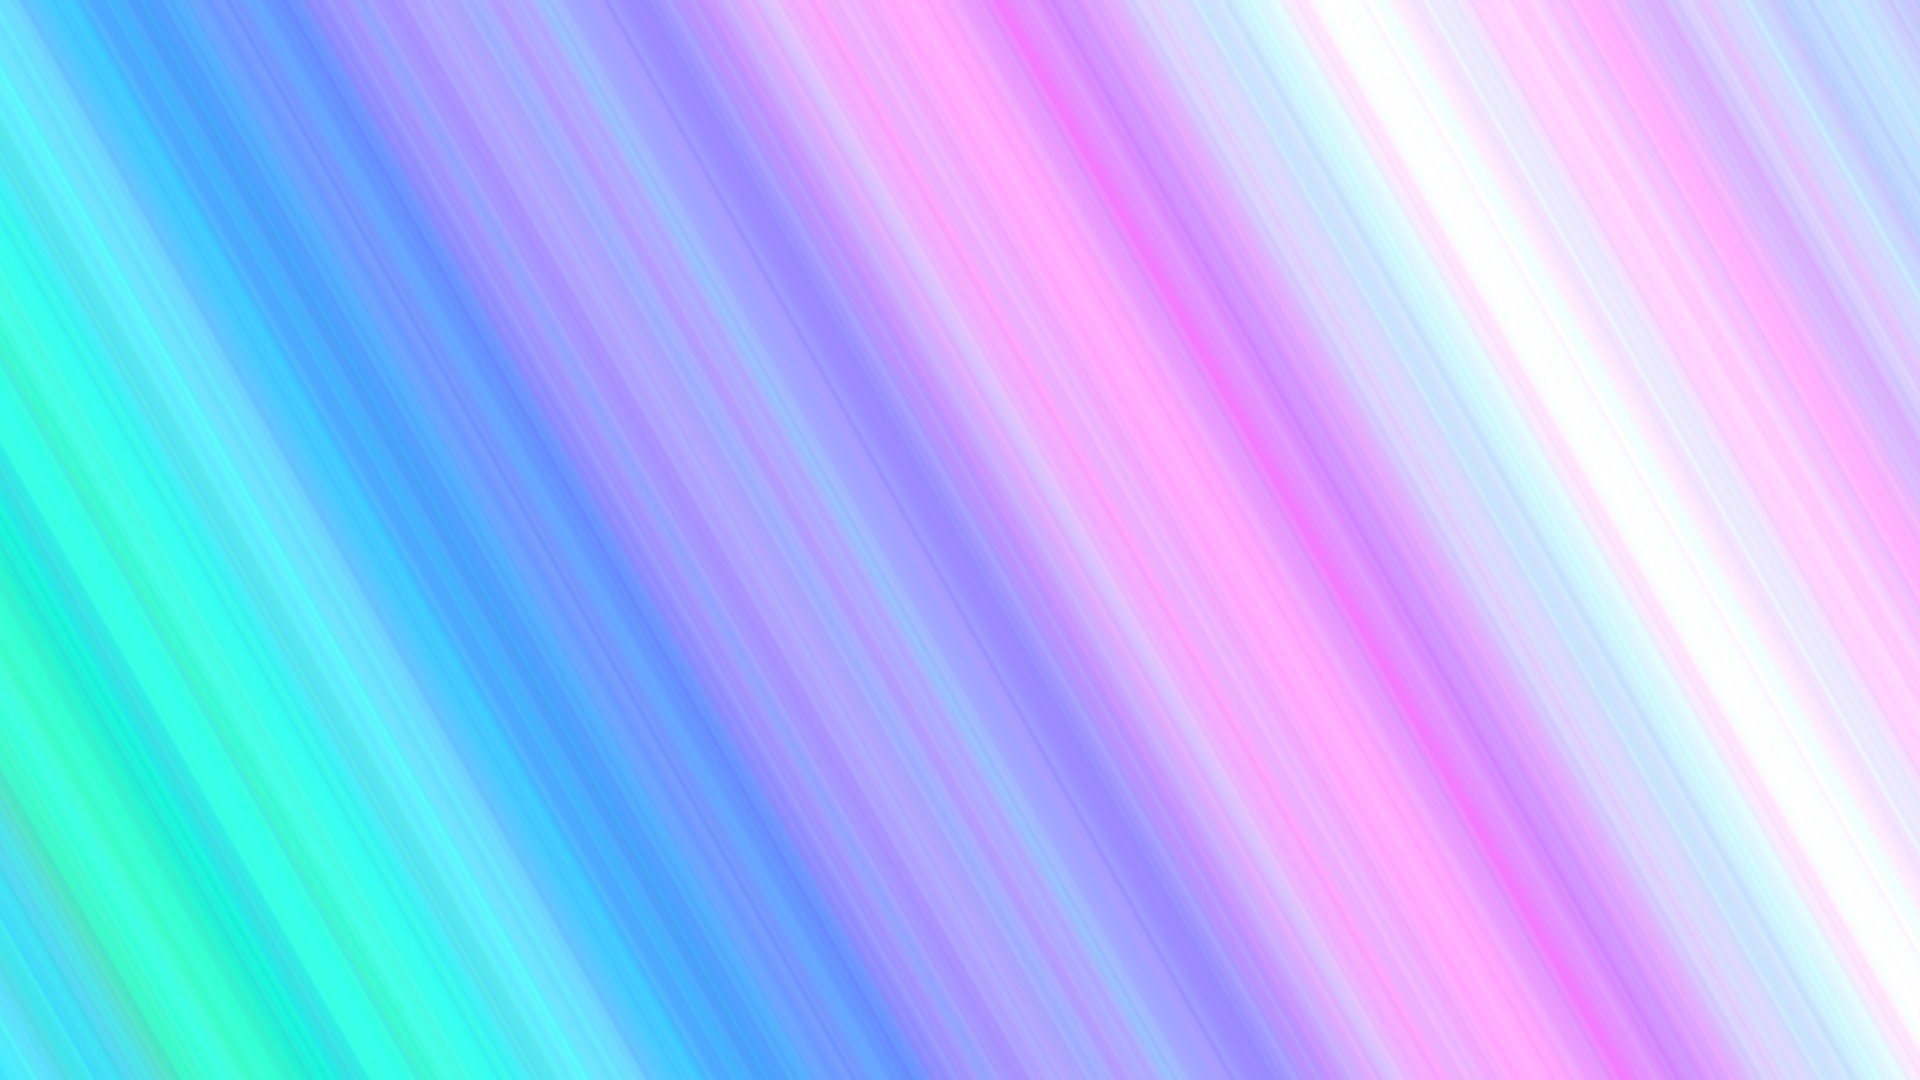 Pink Purple And Blue Wallpaper   HD Wallpapers Pretty 1920x1080